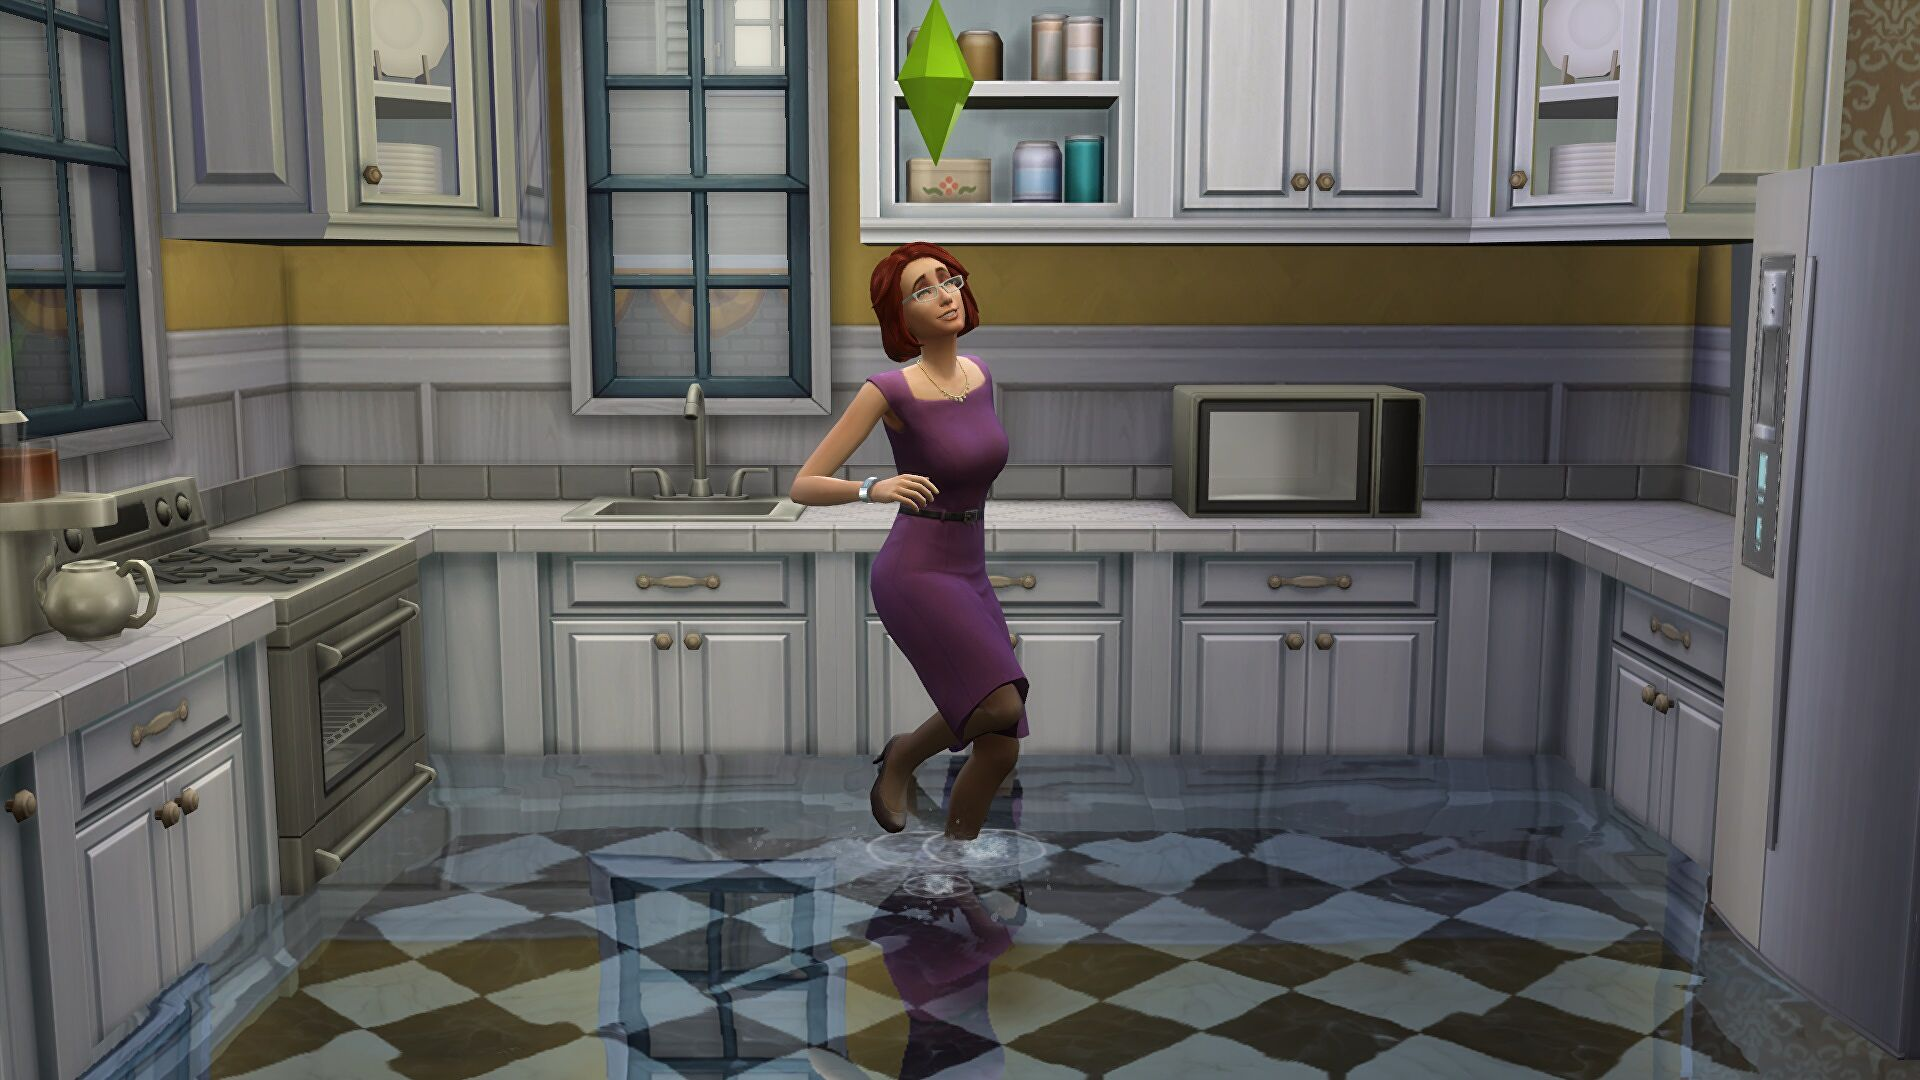 The Sims 4 players are flooding their homes with ponds